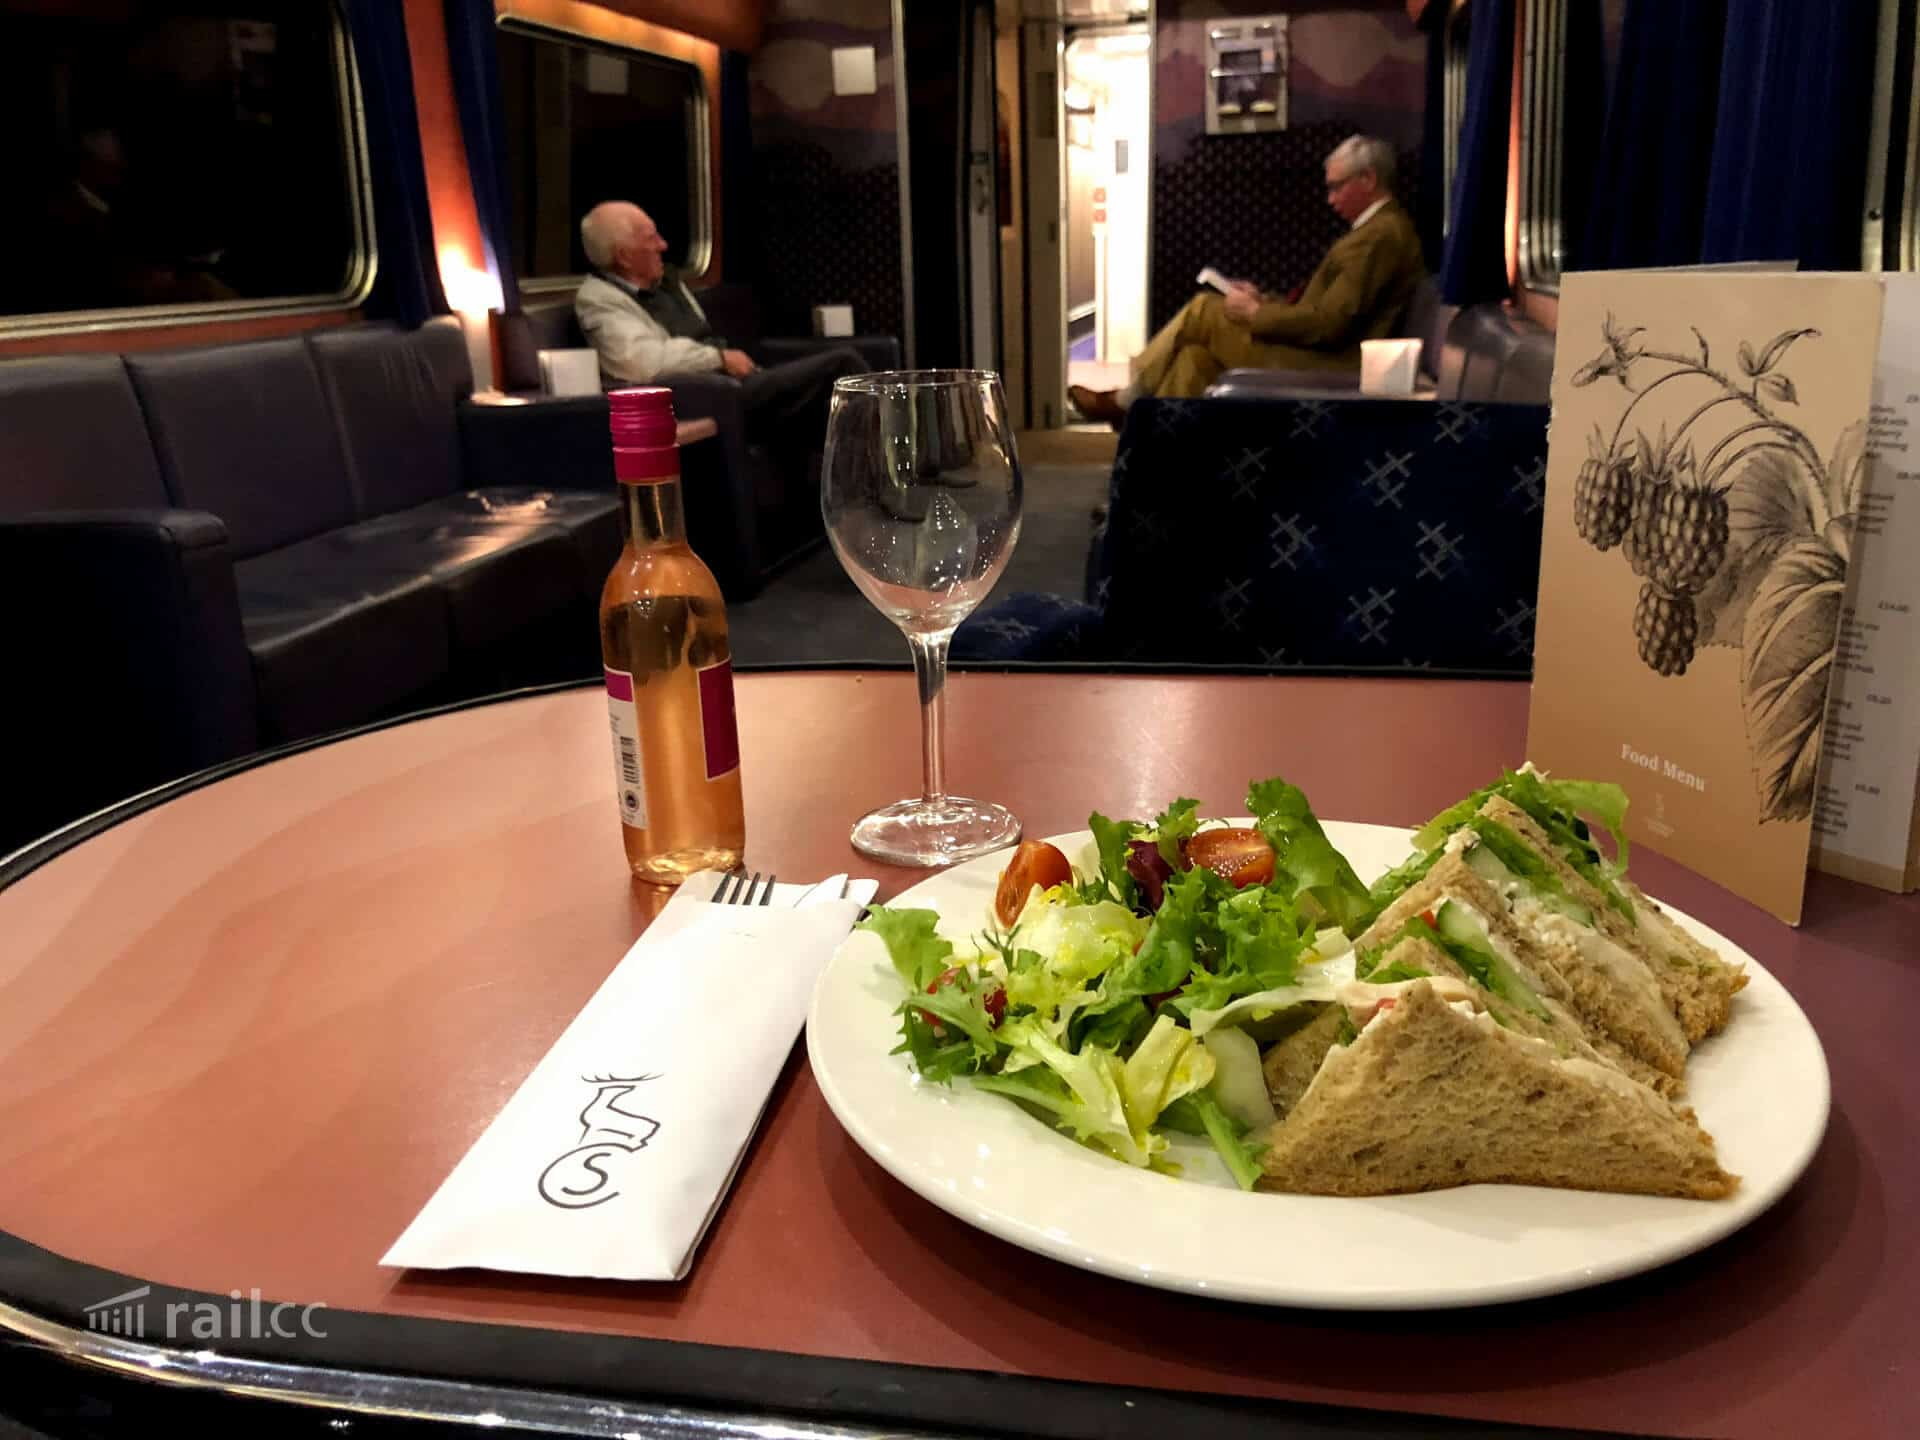 Having a sandwich at the restaurant car of the Caledonian Sleeper night train to Scotland